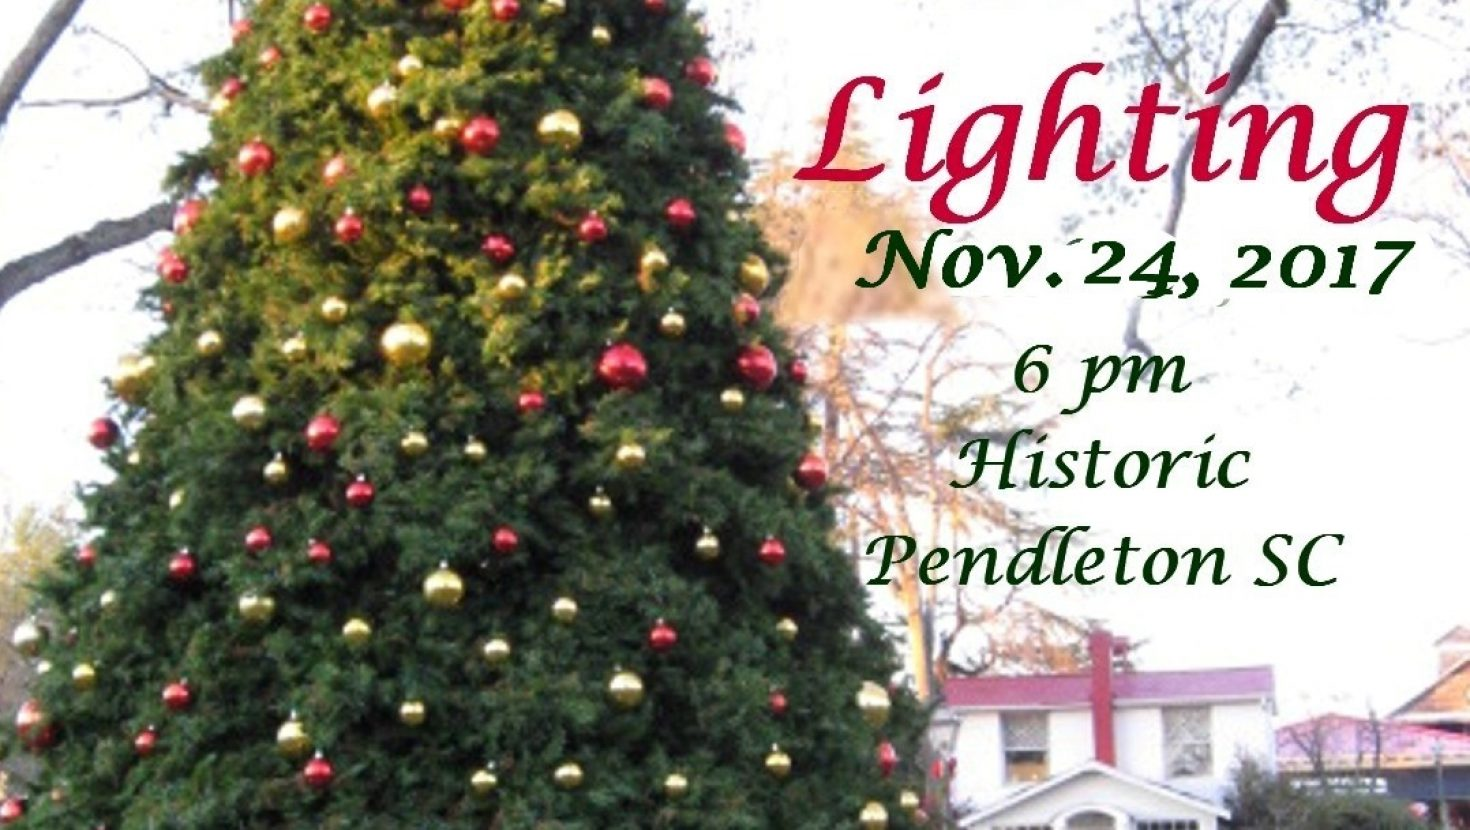 Join us for our Annual Tree Lighting